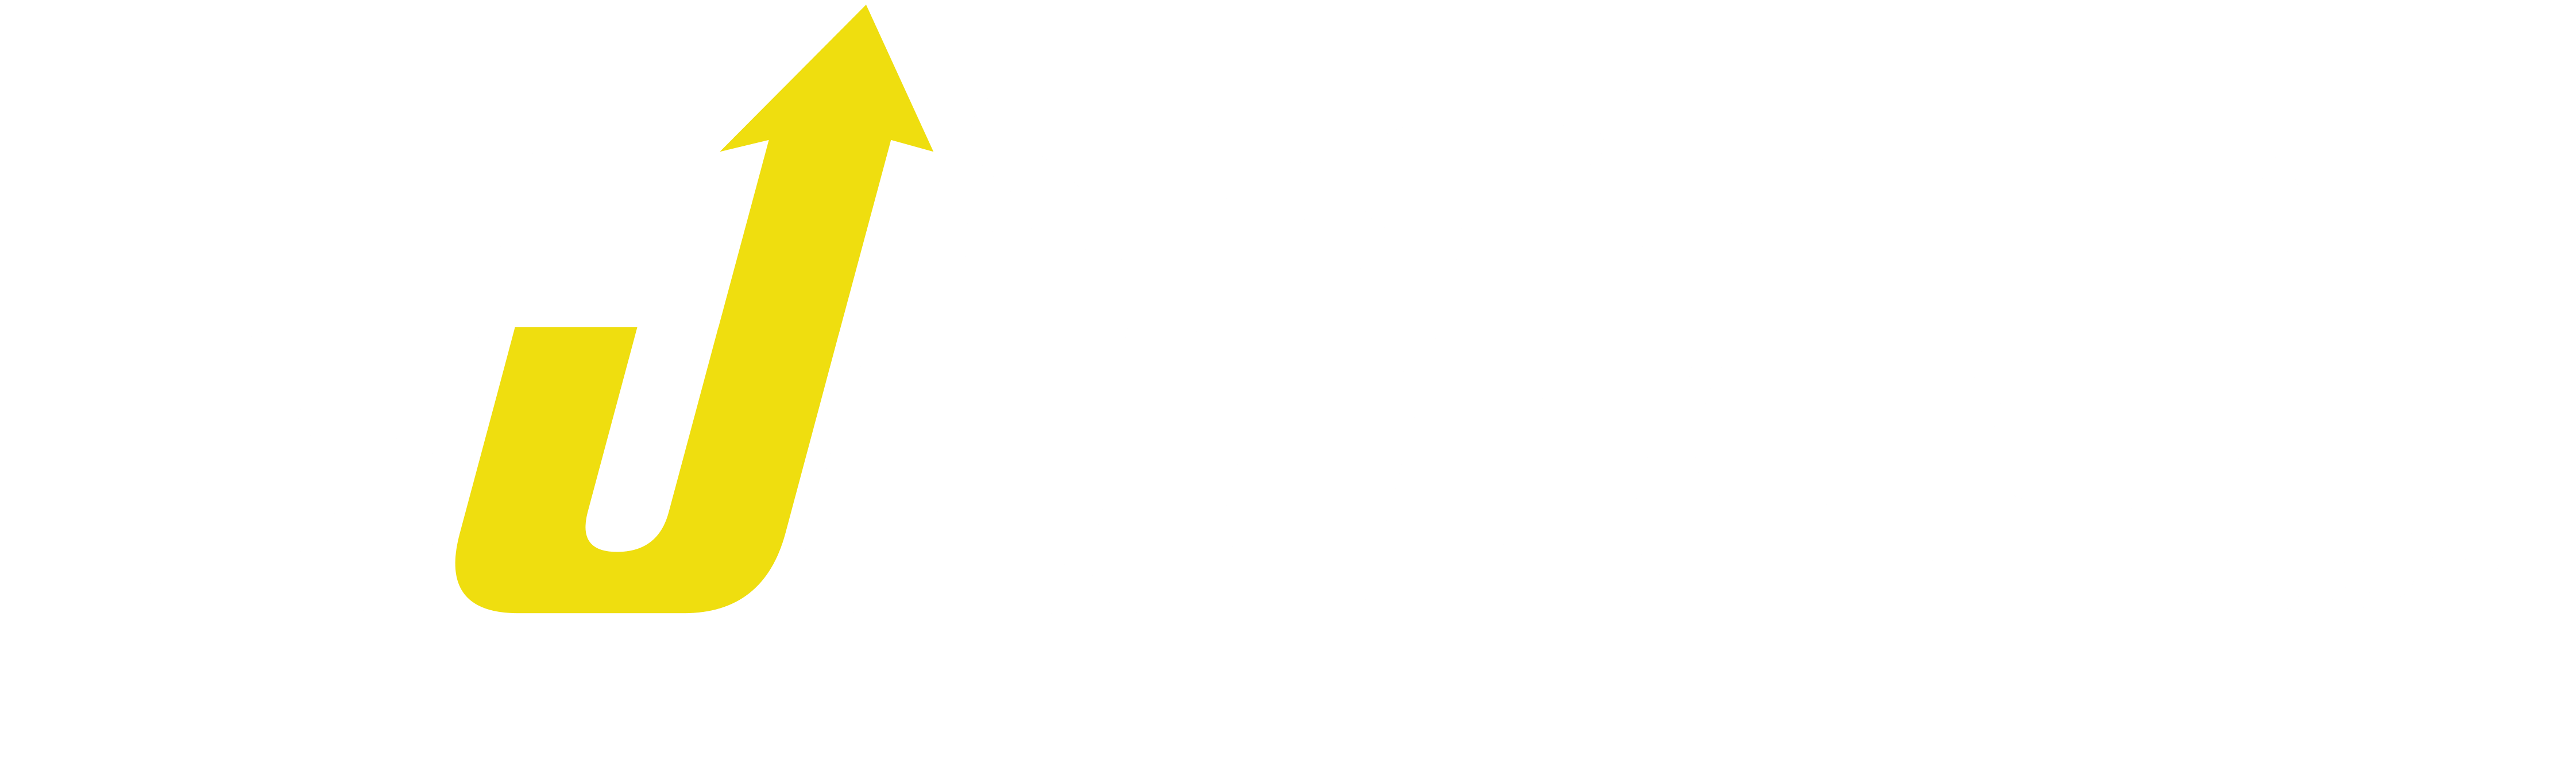 TheSecretToSuccess.com™